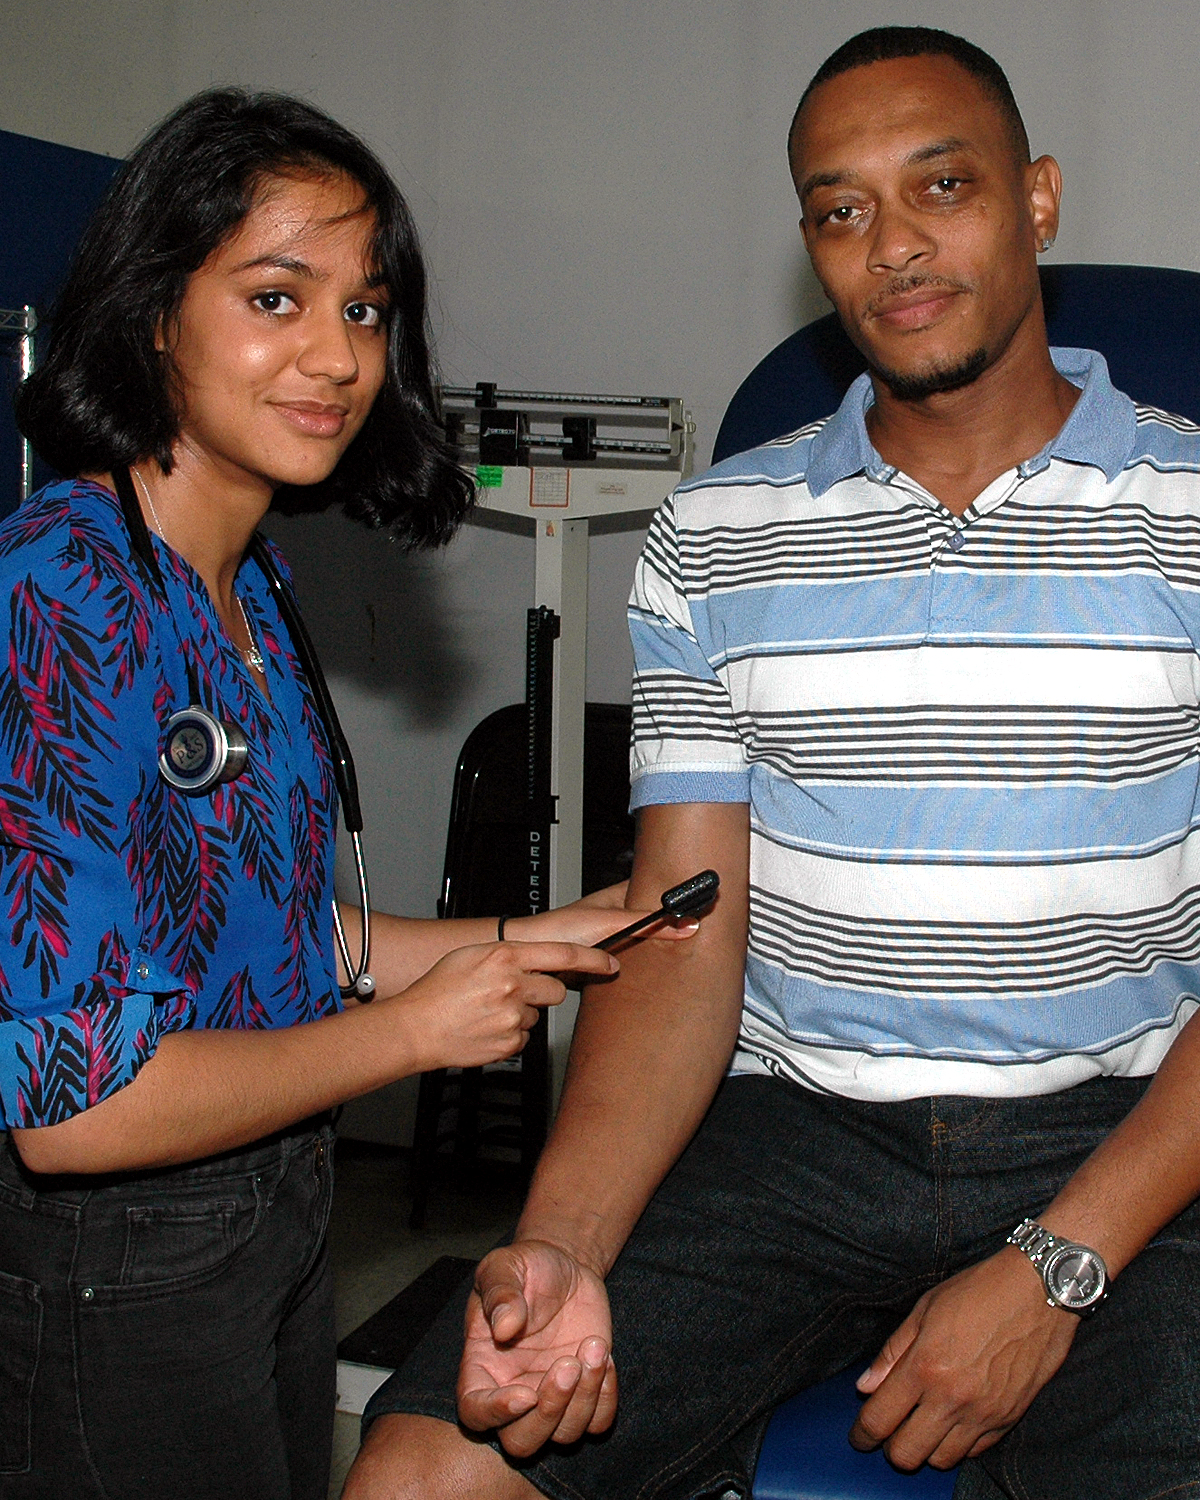 A Columbia University Medical Student with a patient